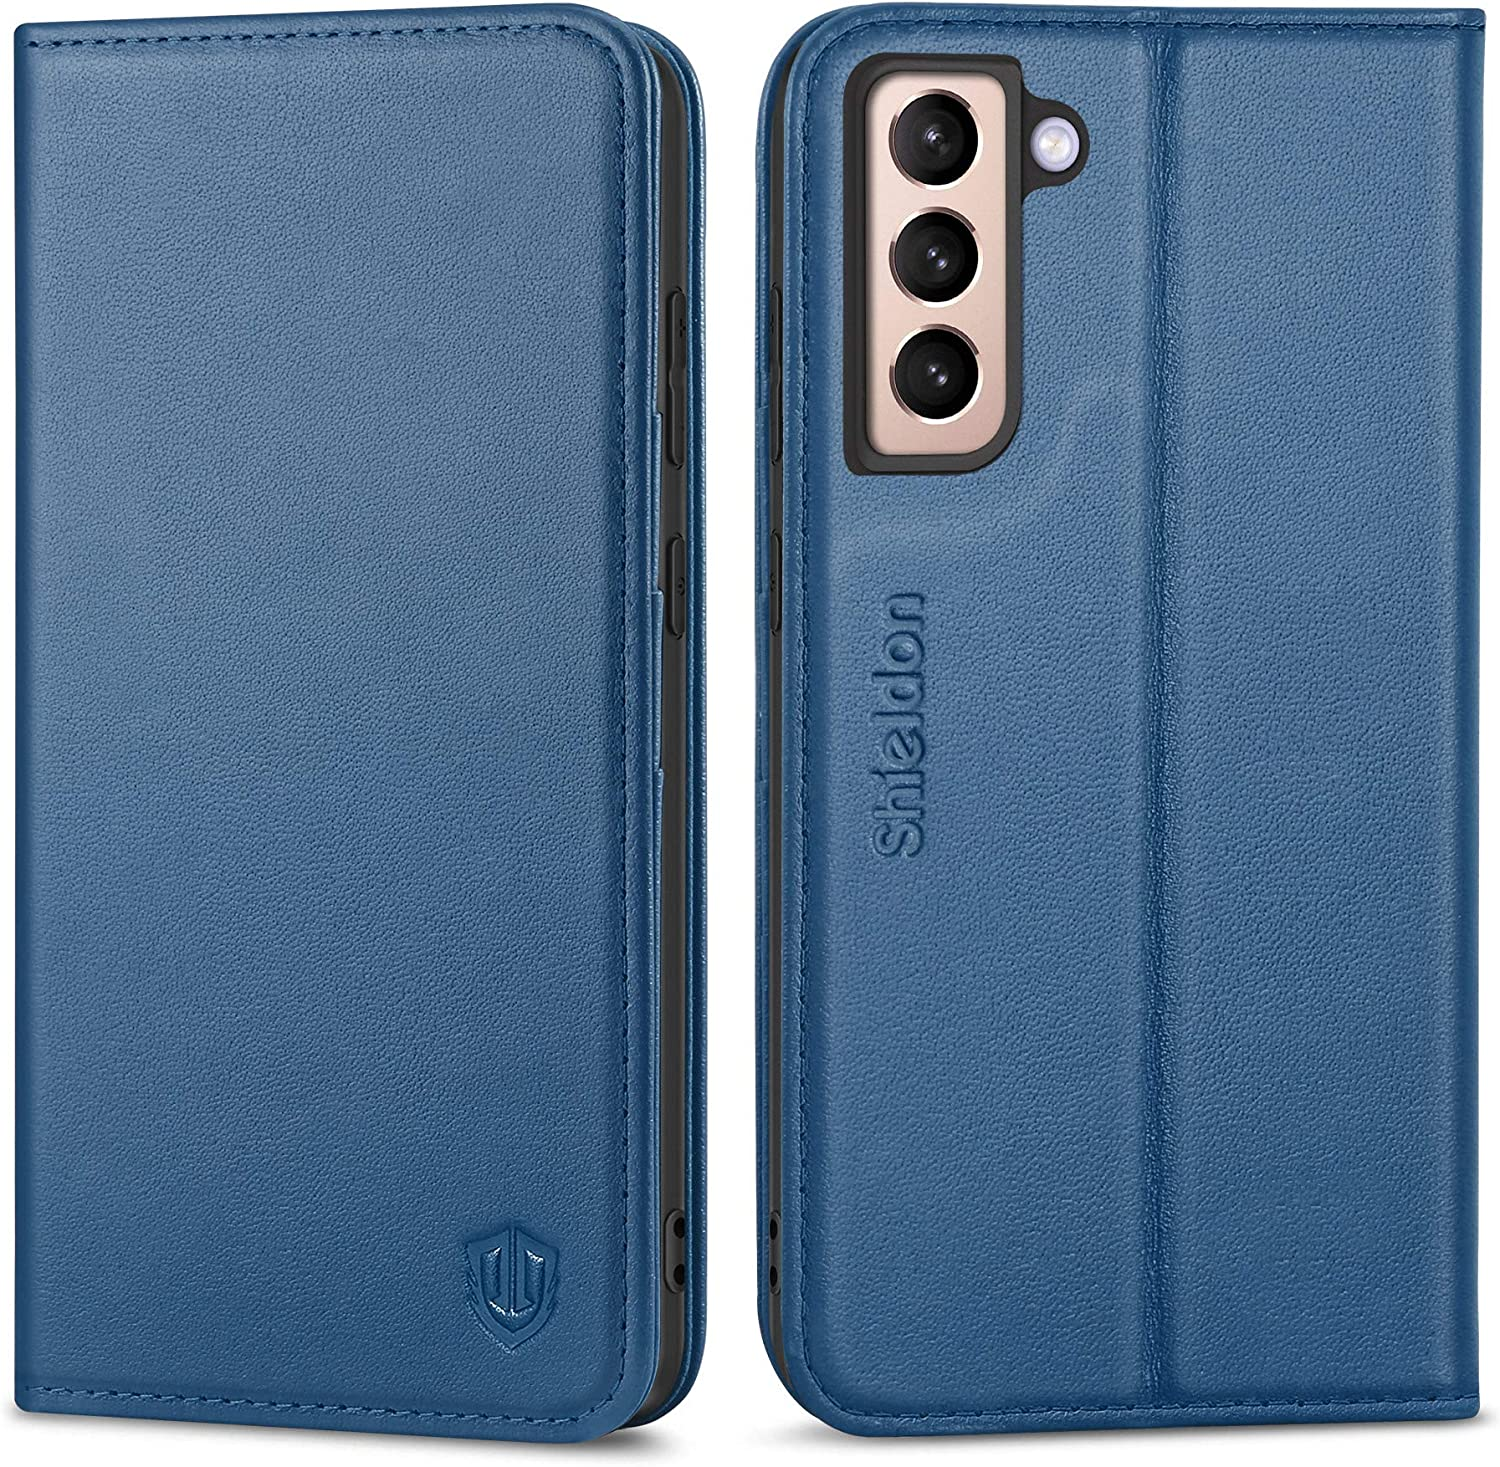 SHIELDON Galaxy S21 5G Case, Genuine Leather Galaxy S21 Wallet Case with Credit Card Holder, RFID Protective Magnetic TPU Shockproof Cover Compatible with Galaxy S21 5G (2021) - Royal Blue